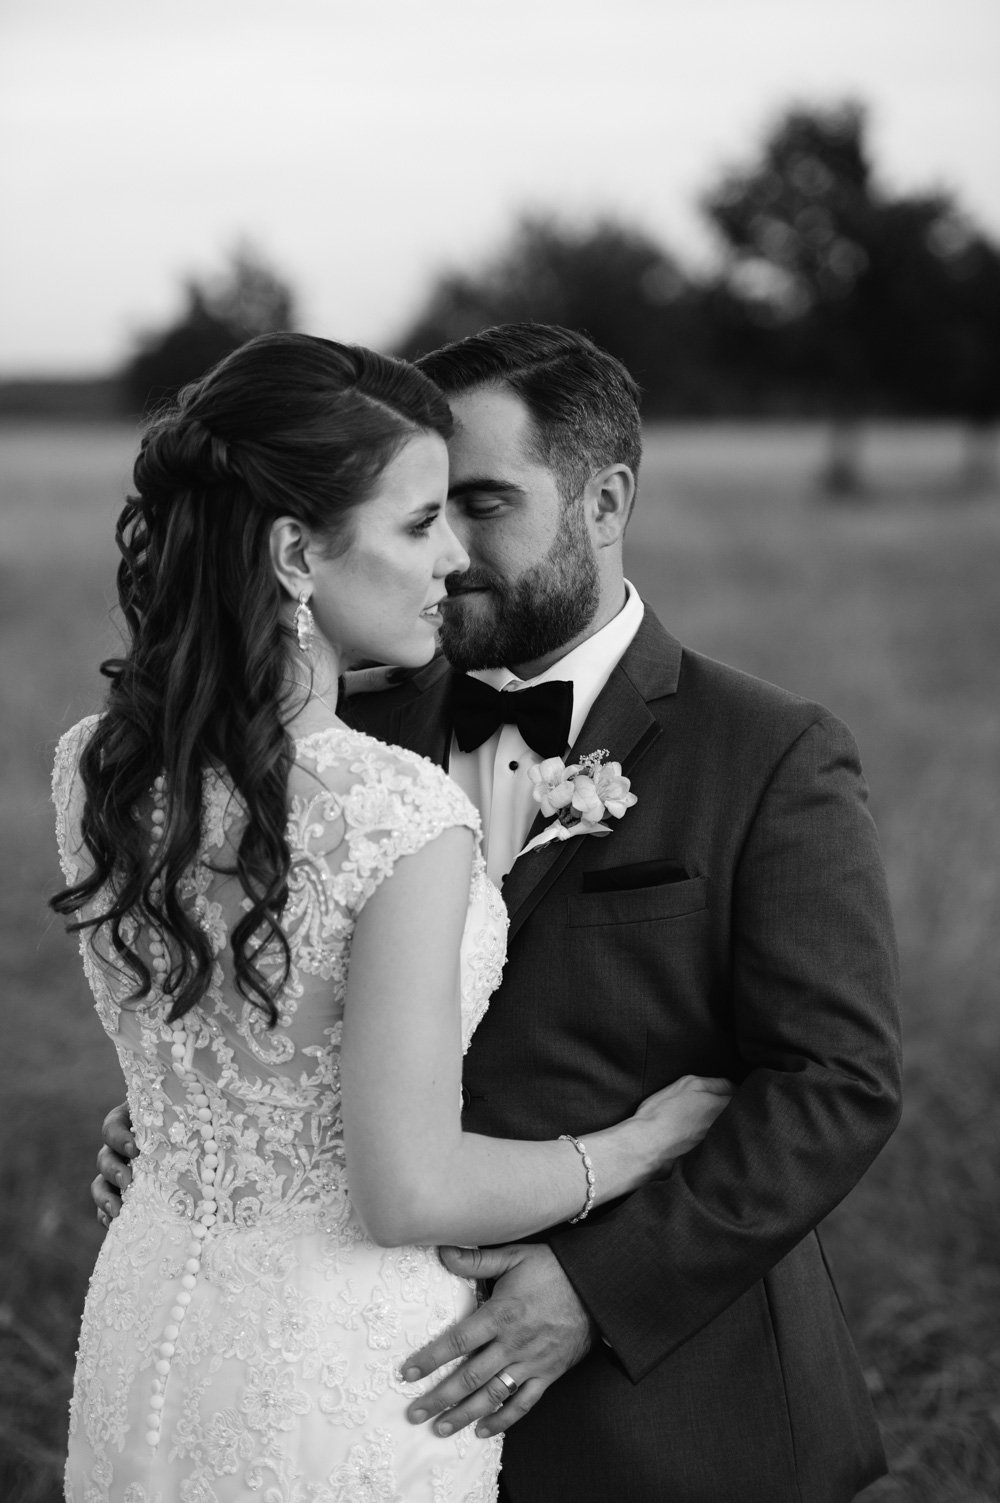 black and white bride and groom photographs, intimate portrait of bride and groom together, san antonio wedding photographer